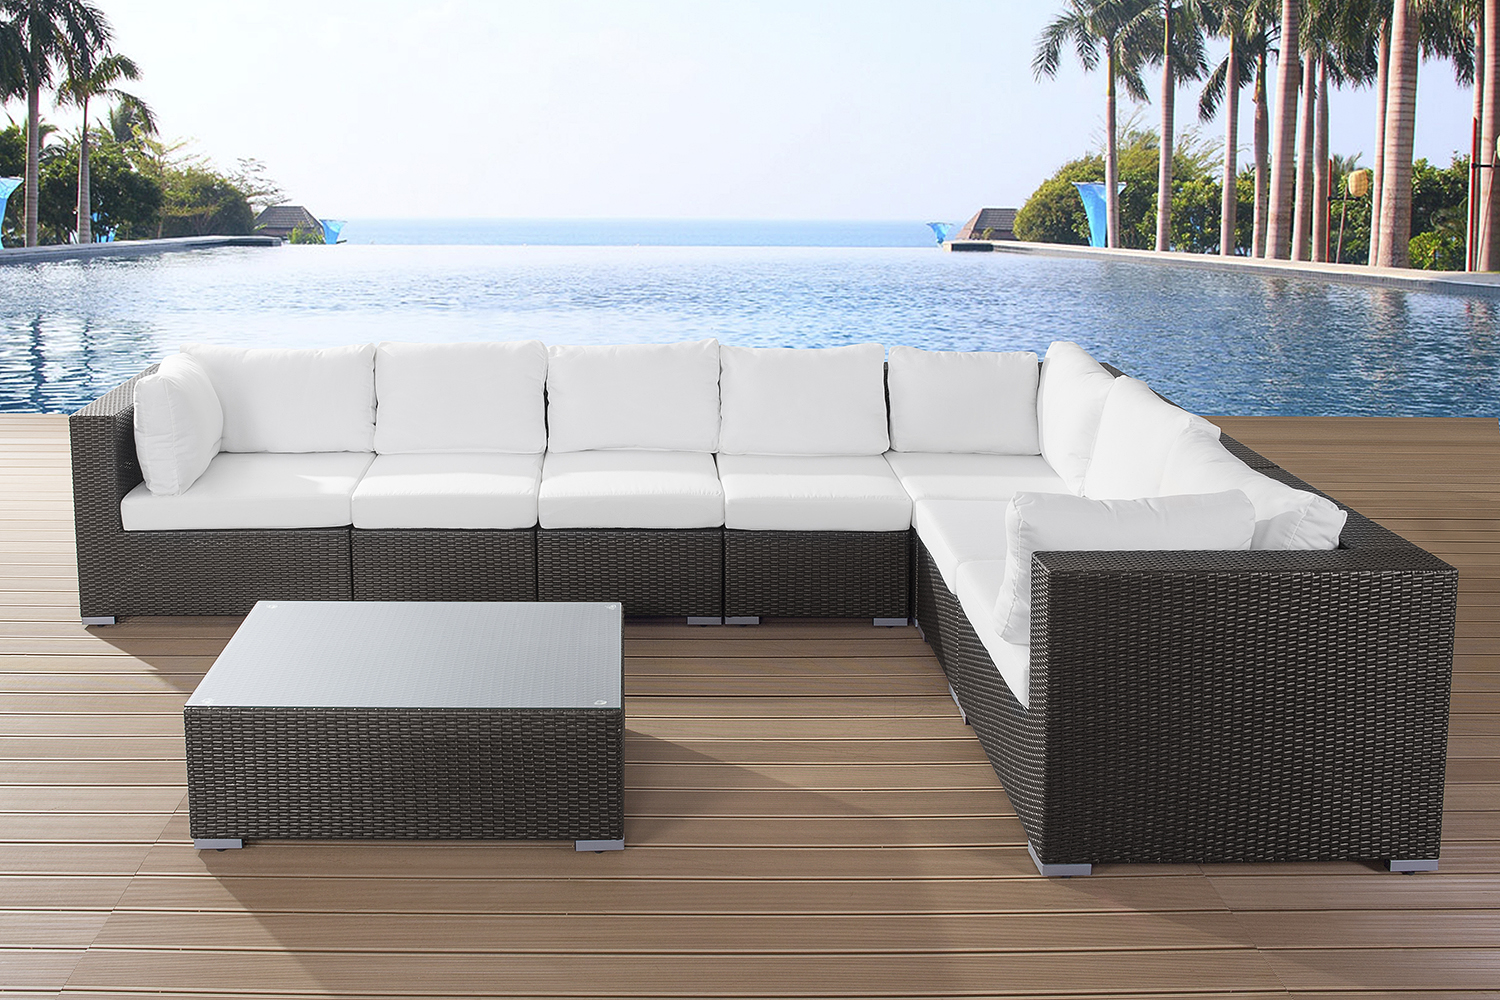 Obi Gartenmobel Chelsea : PATIO WICKER RATTAN RESIN LOUNGE SET GARDEN FURNITURE SOFA SUITE